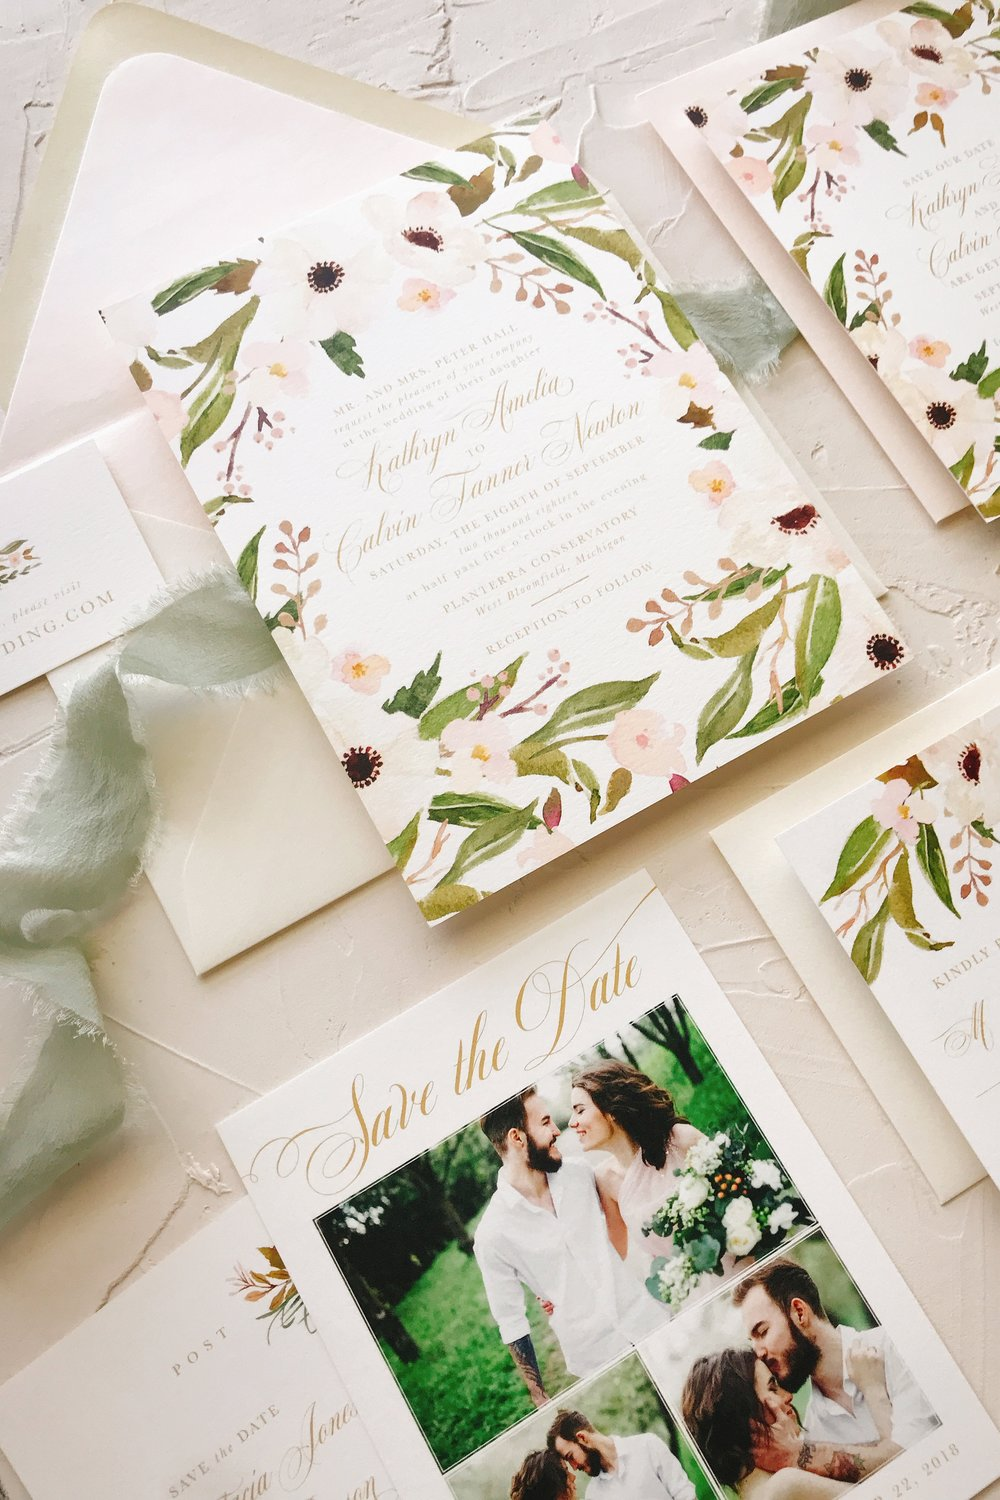 Blush and Champagne Wedding Invitations.jpg